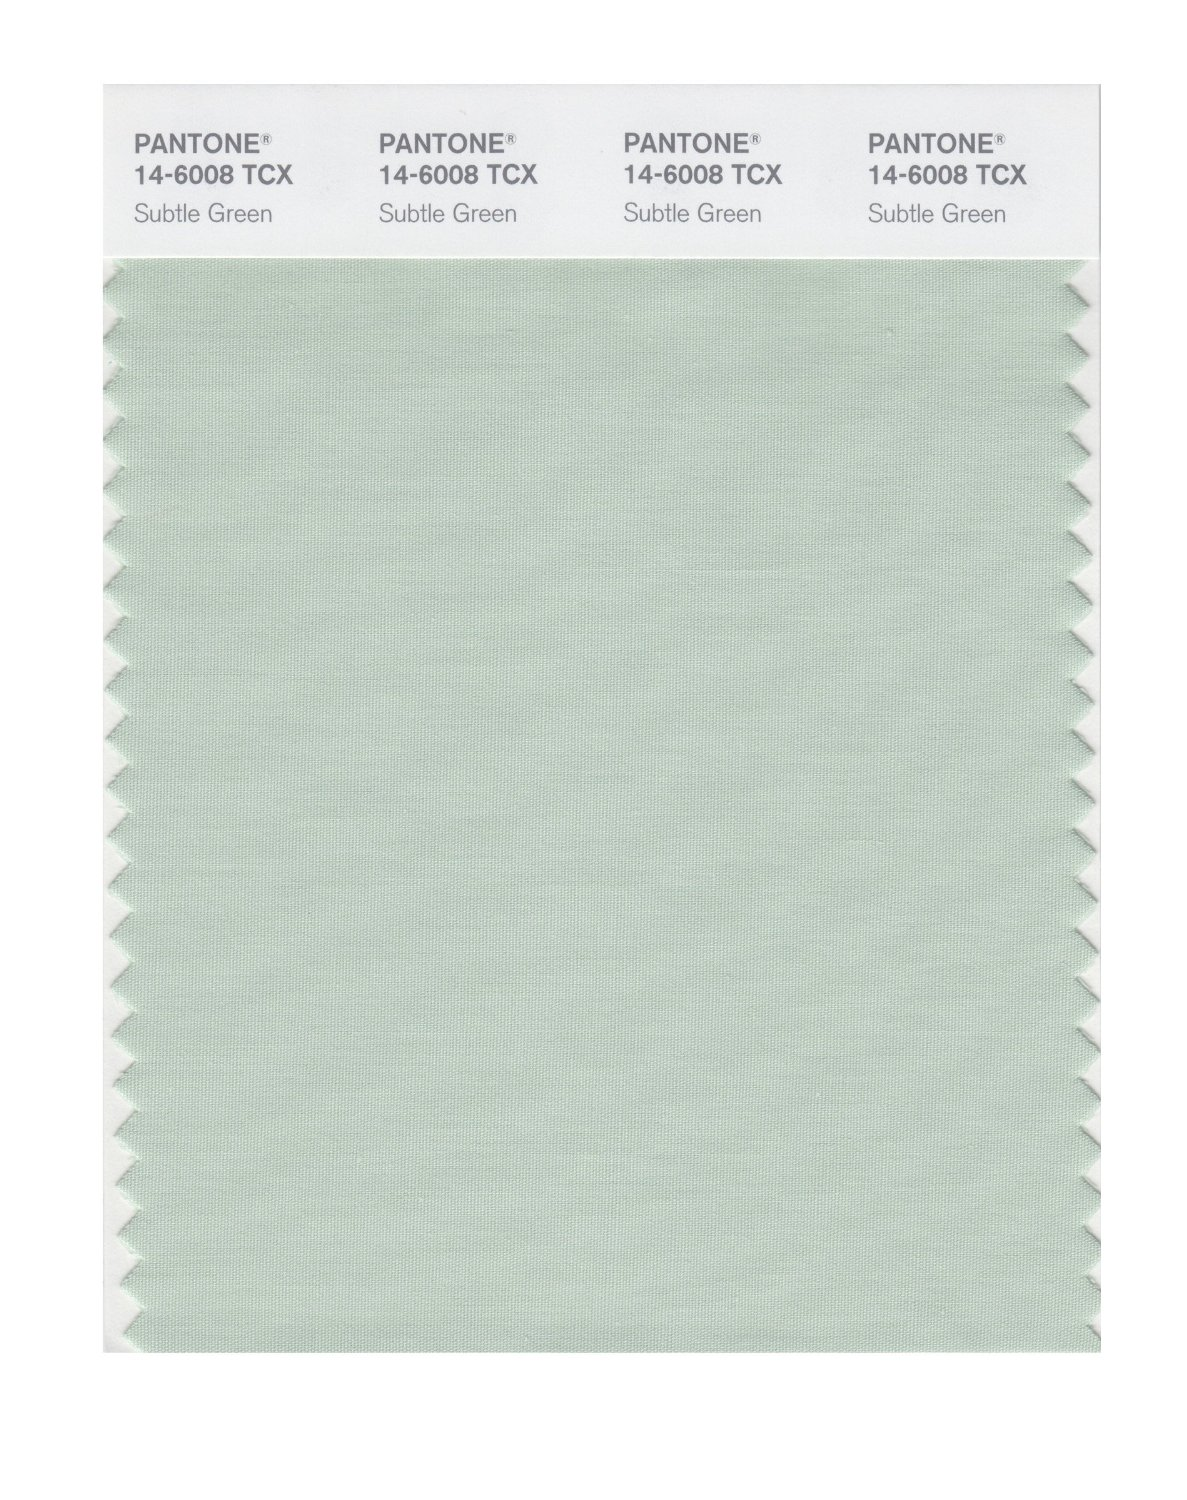 Pantone Smart Swatch 14-6008 Subtle Green